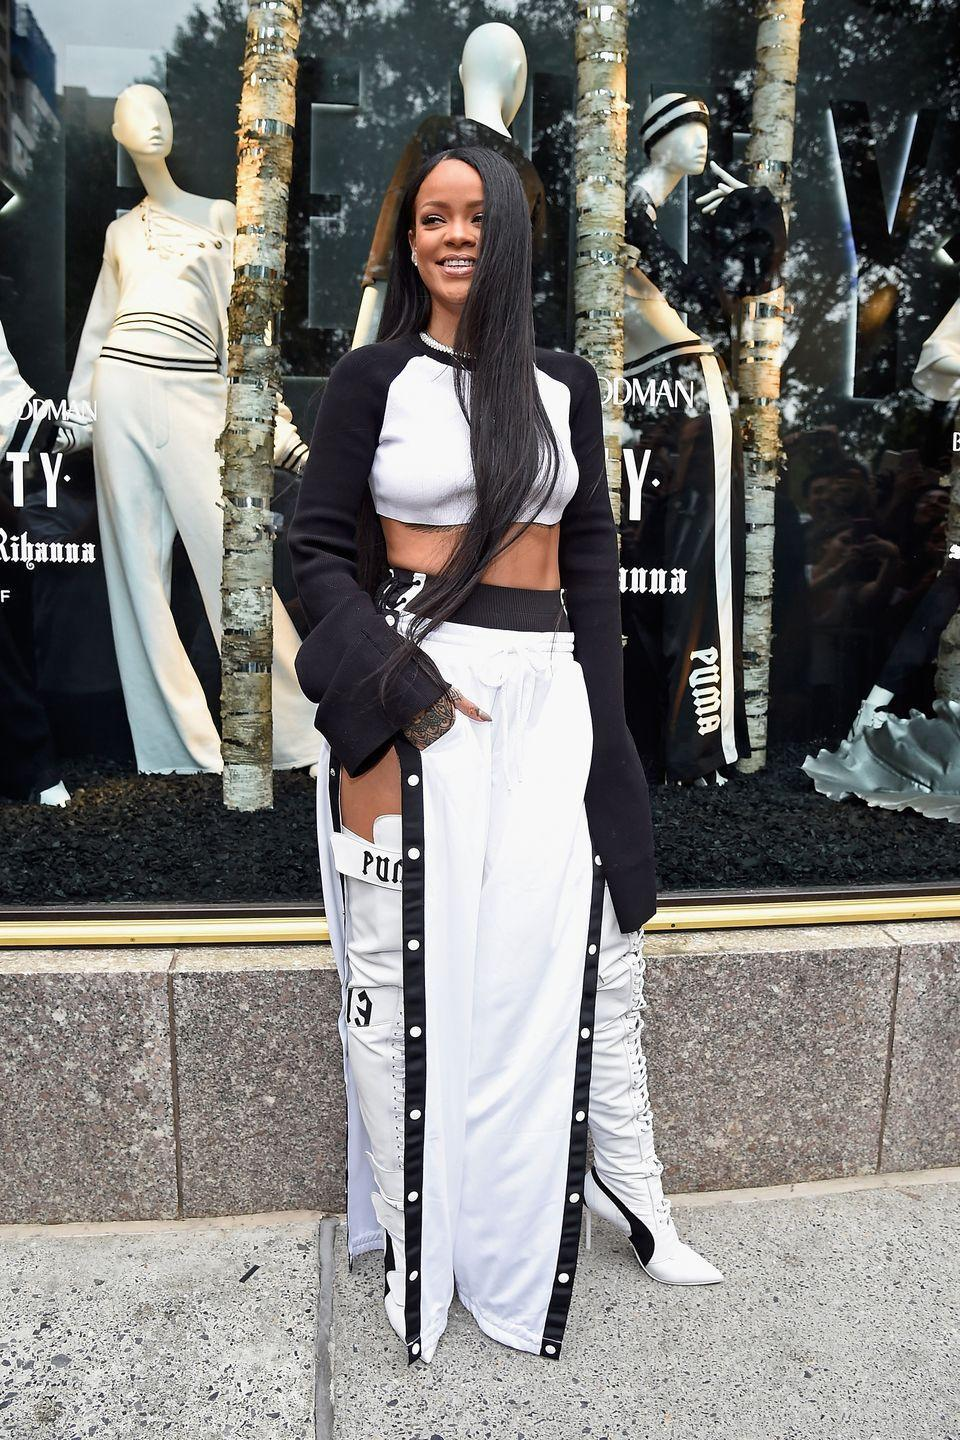 <p>RiRi wears head-to-toe Fenty x Puma by Rihanna to celebrate the release of her debut collection, while greeting fans and shoppers at Bergdorf Goodman in NYC. </p>